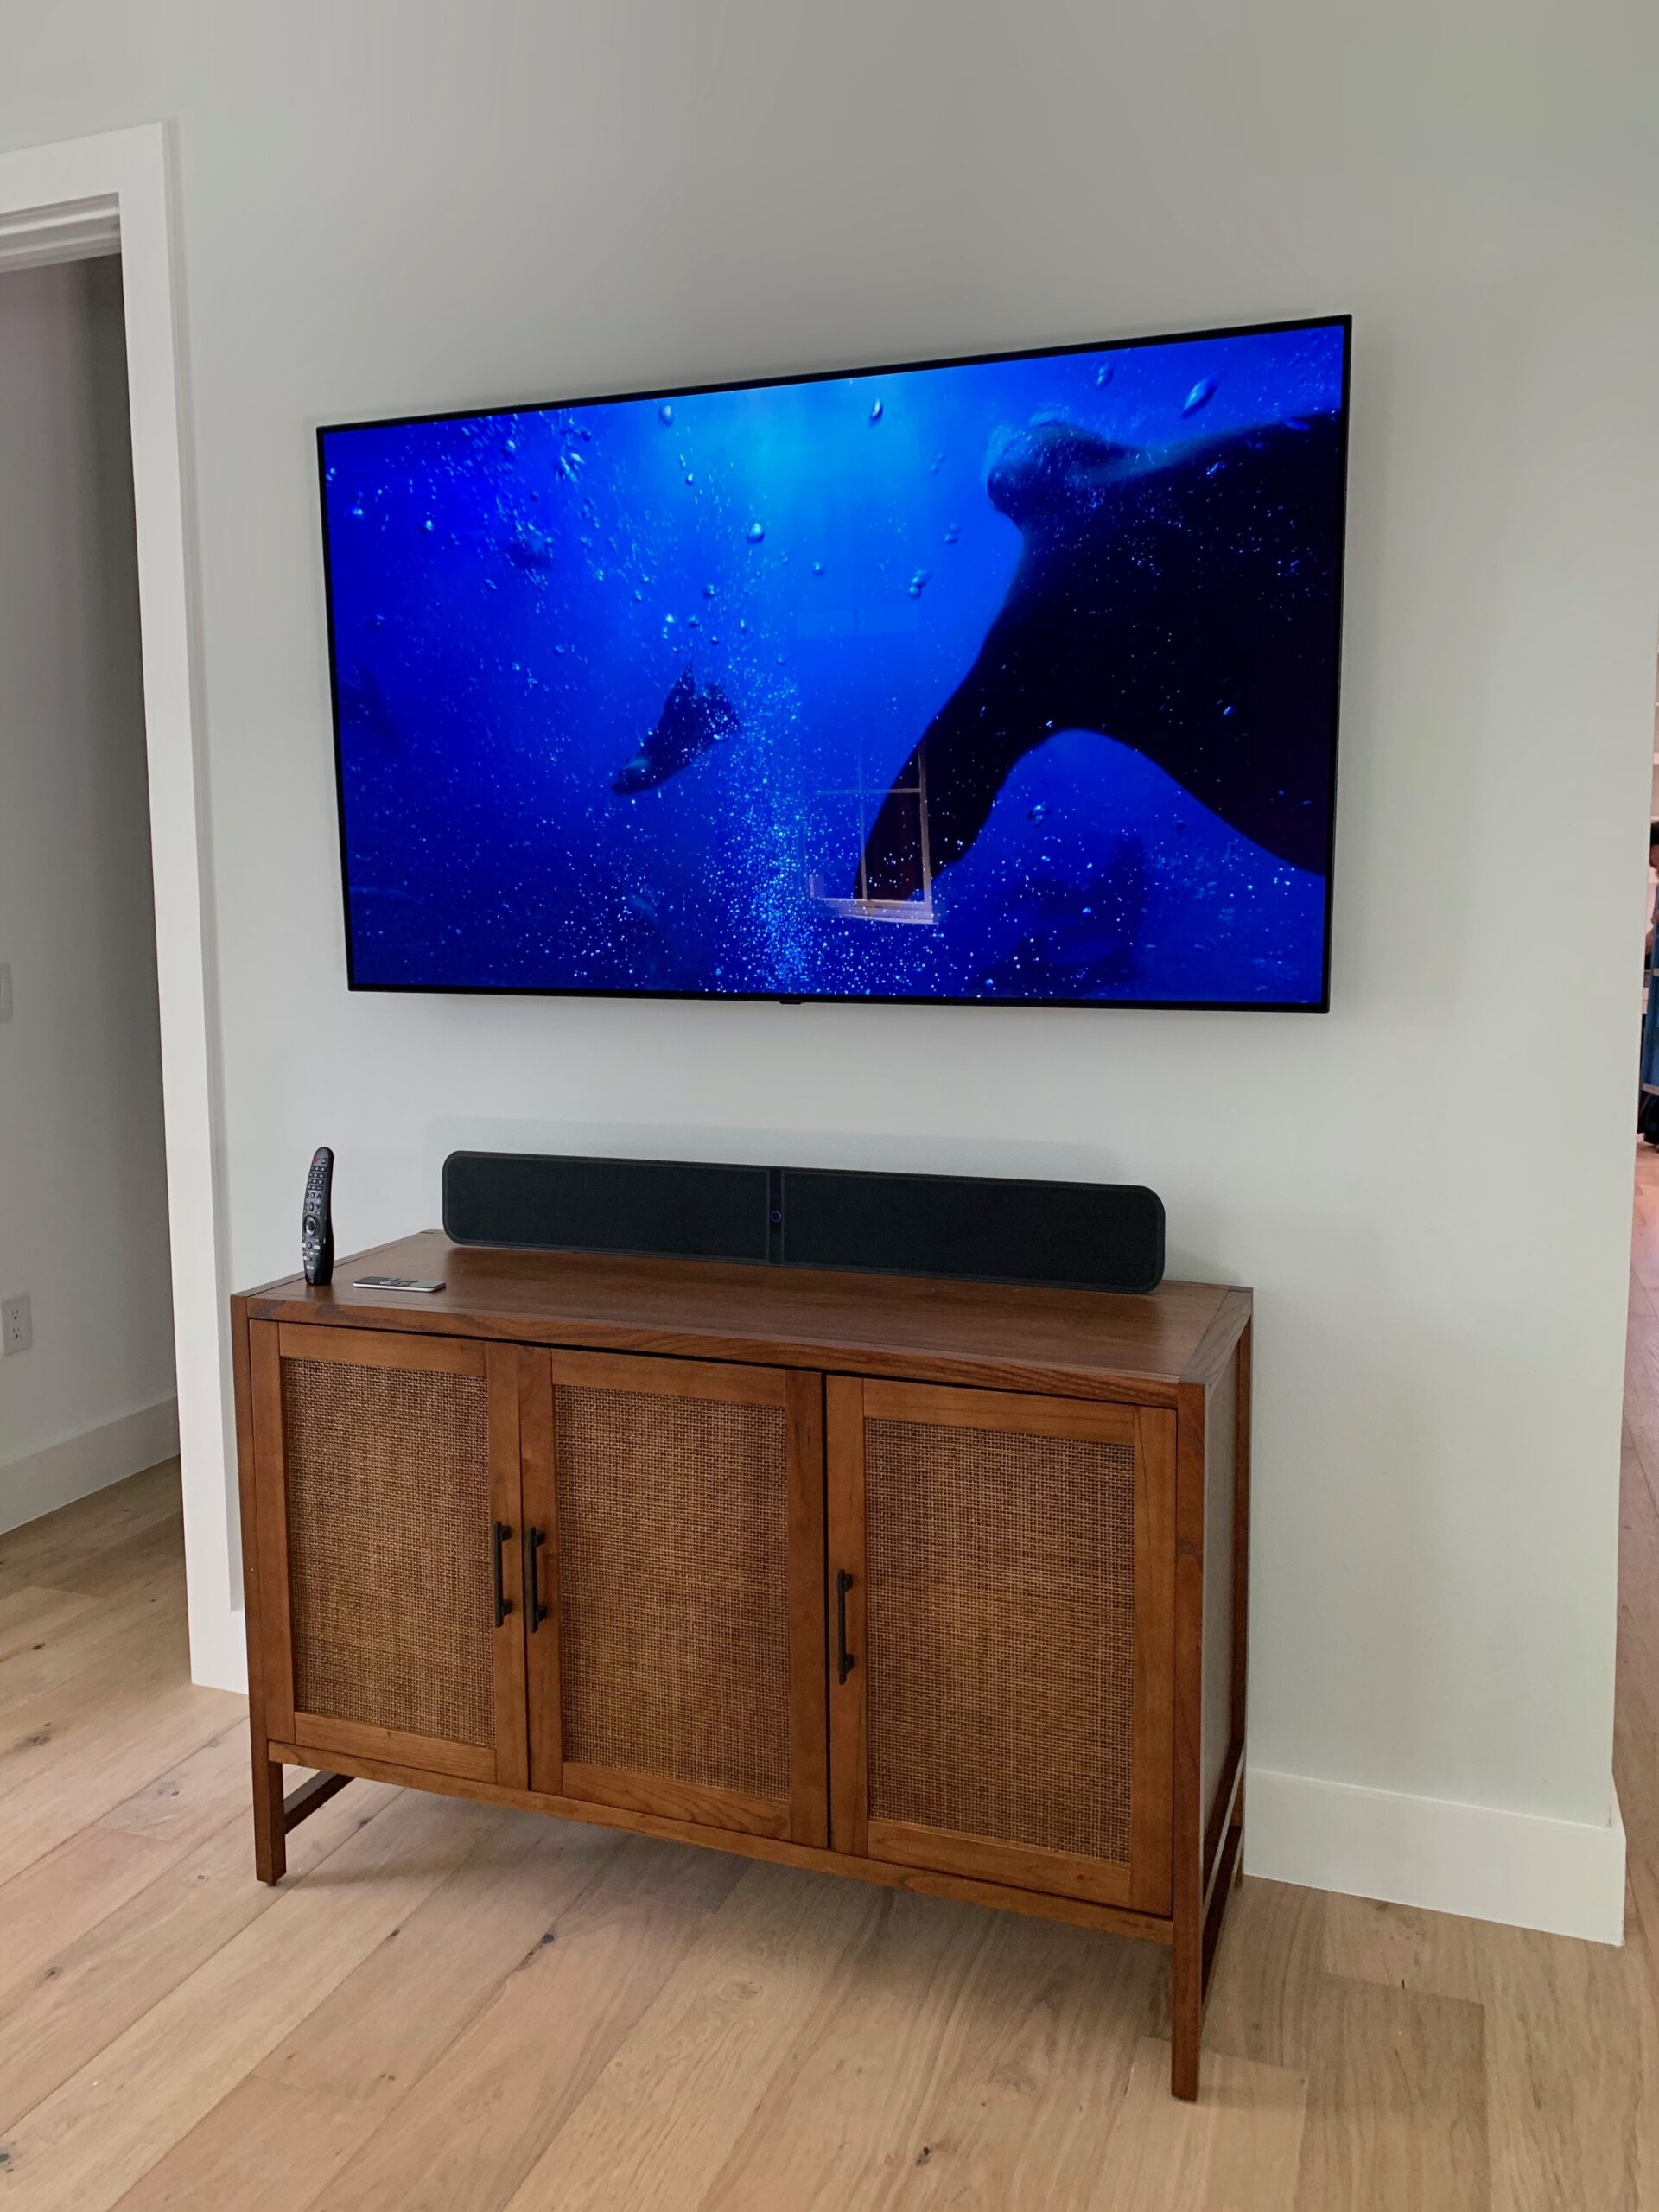 Media room OLED flat screen tv mounted to wall installation